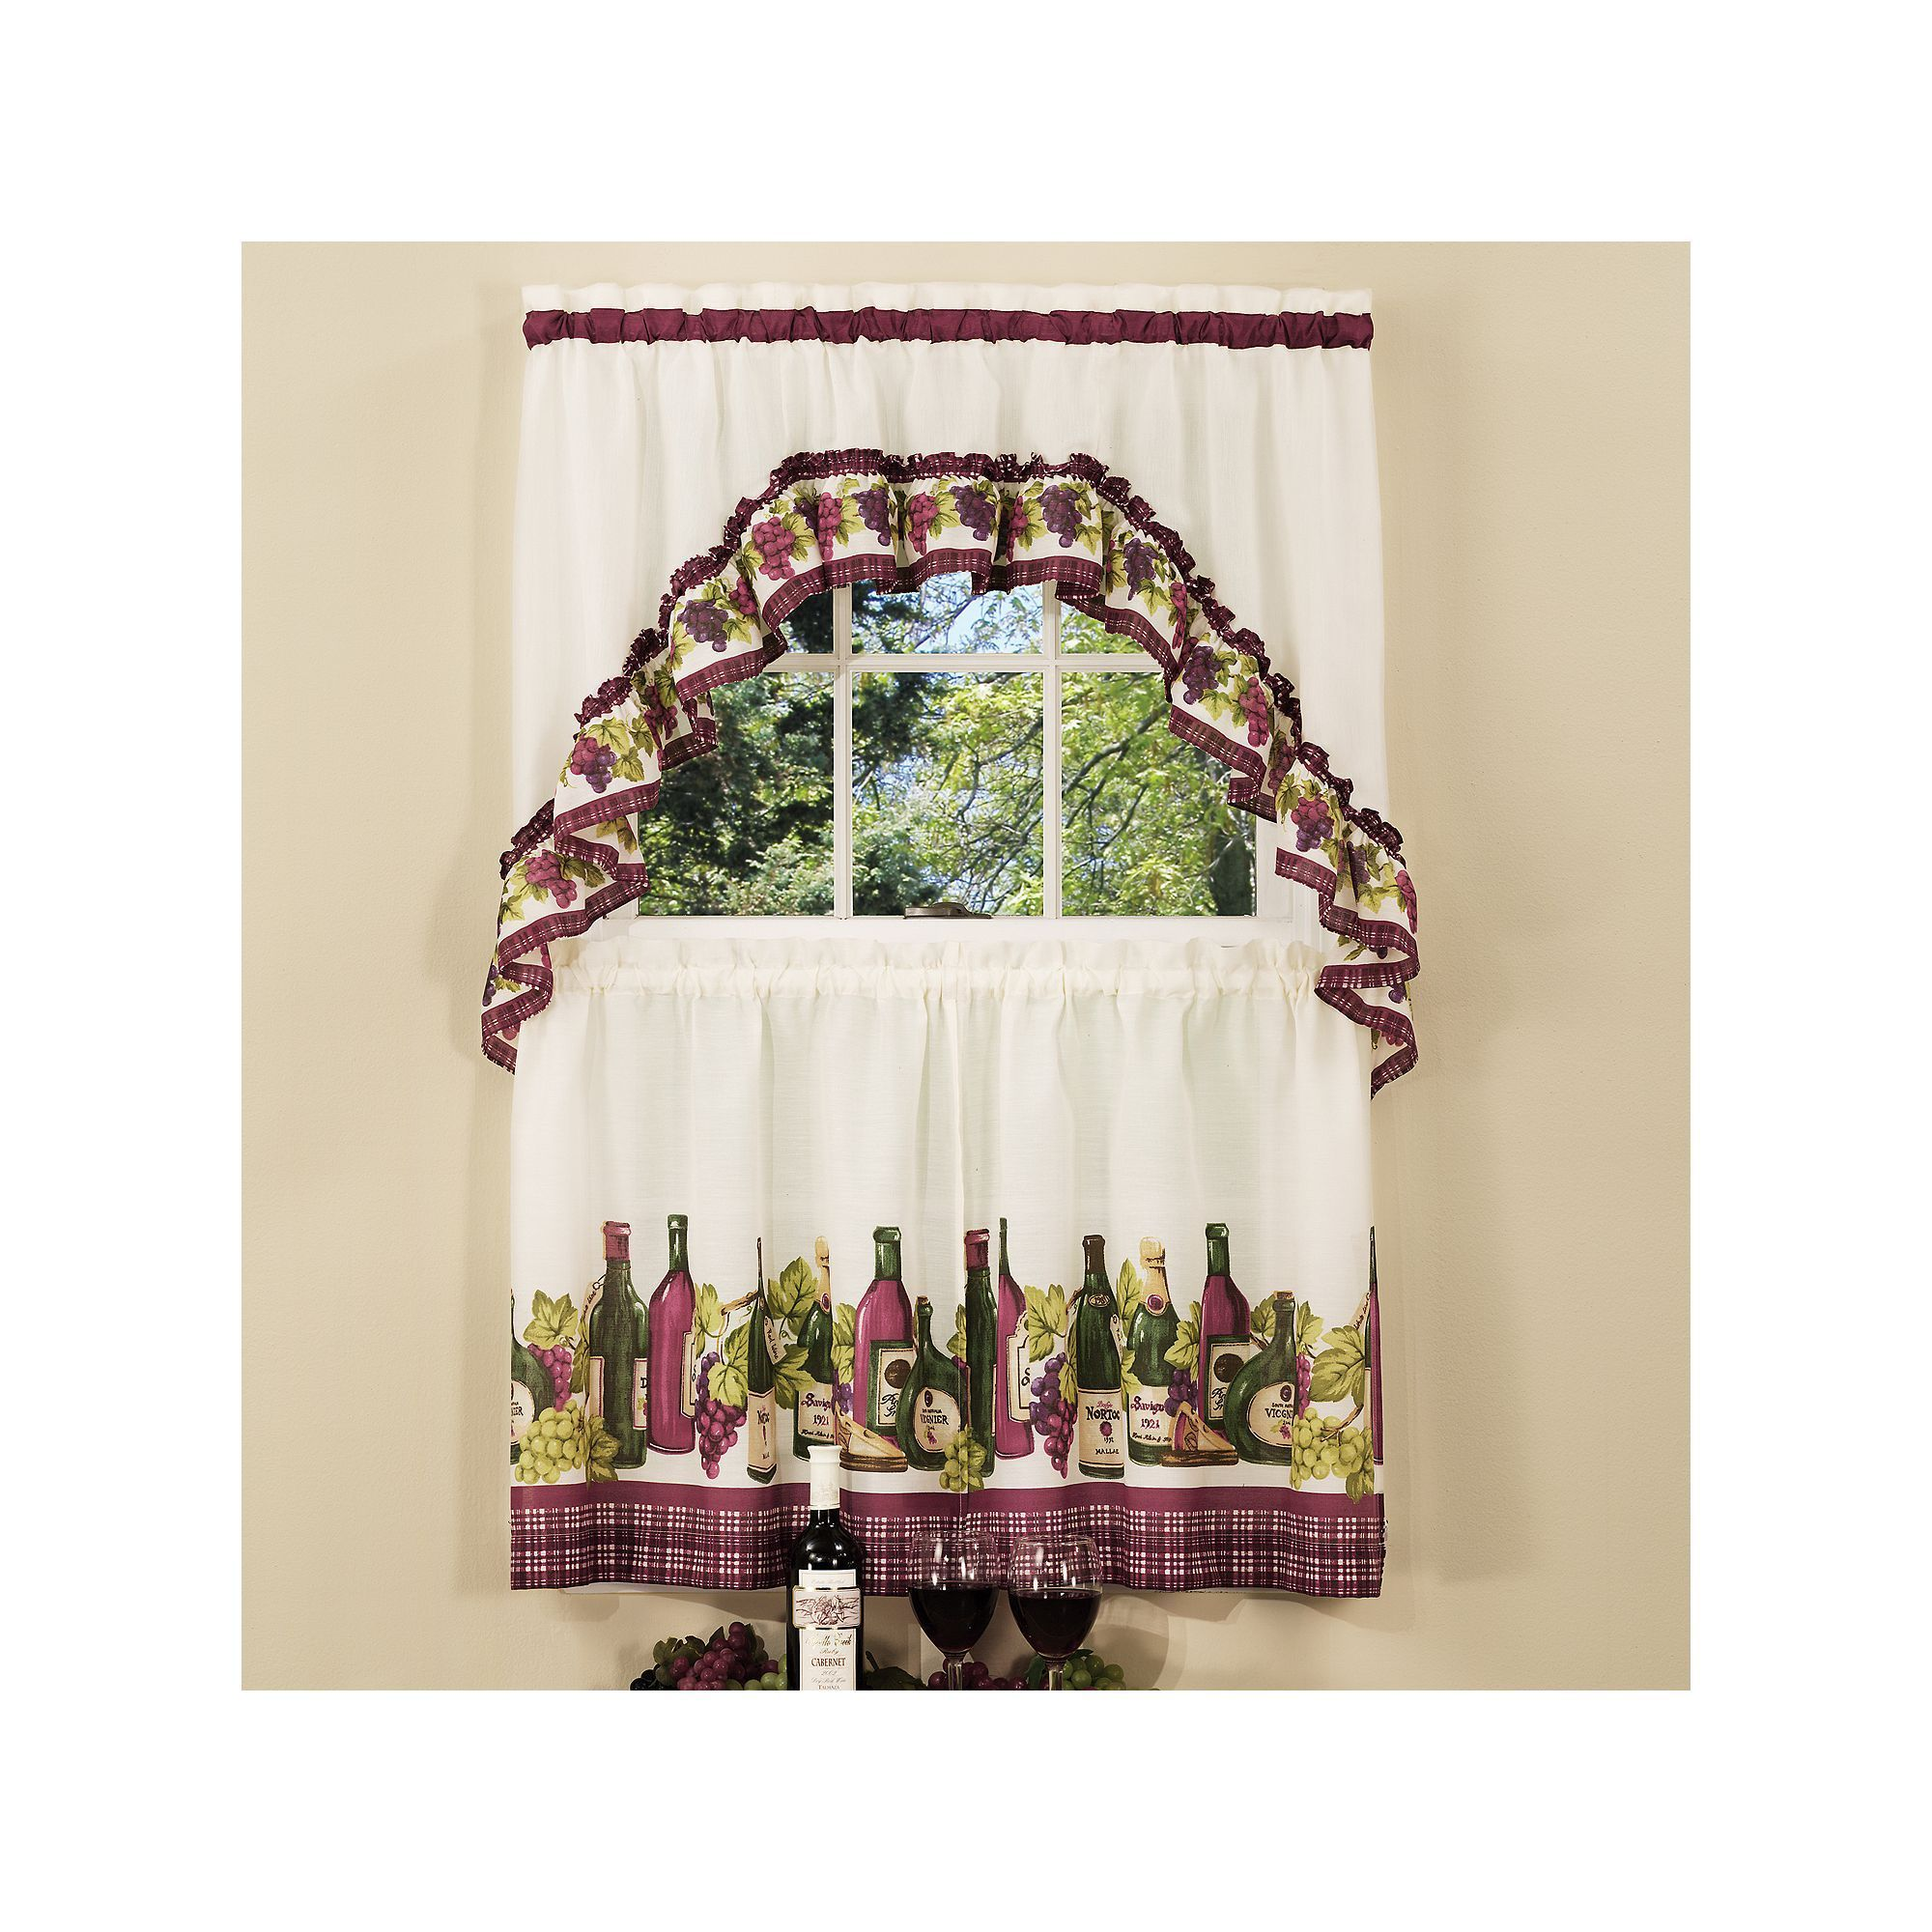 chardonnay wine bottle 3-piece tier swag kitchen window curtain set